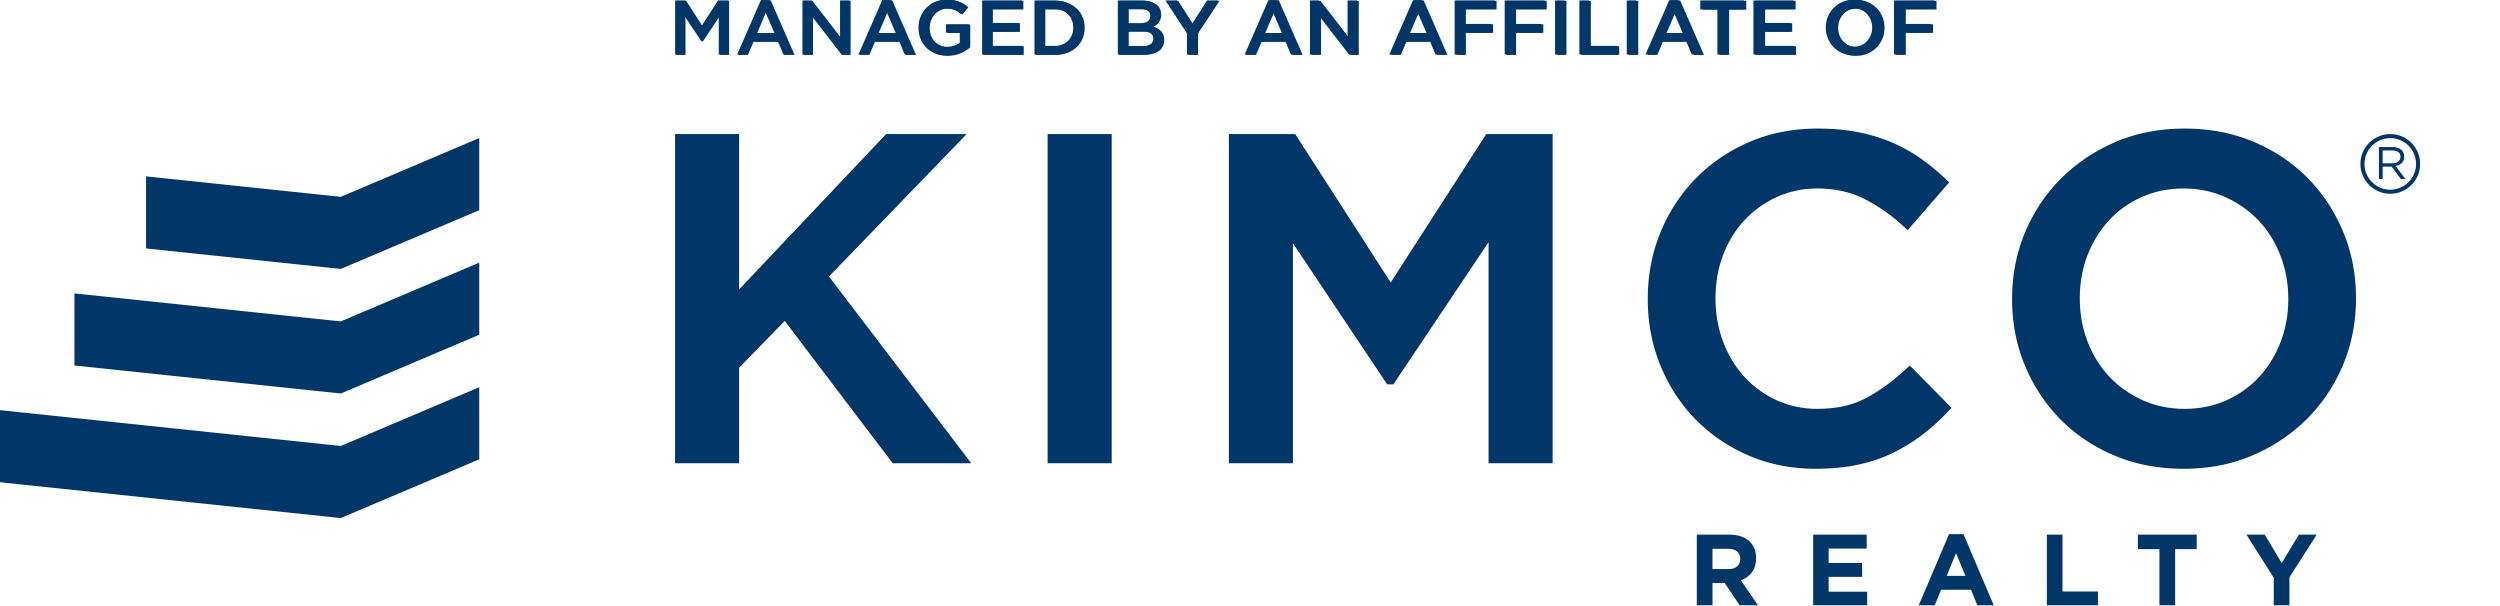 Managed by an Affiliate of Kimco Realty